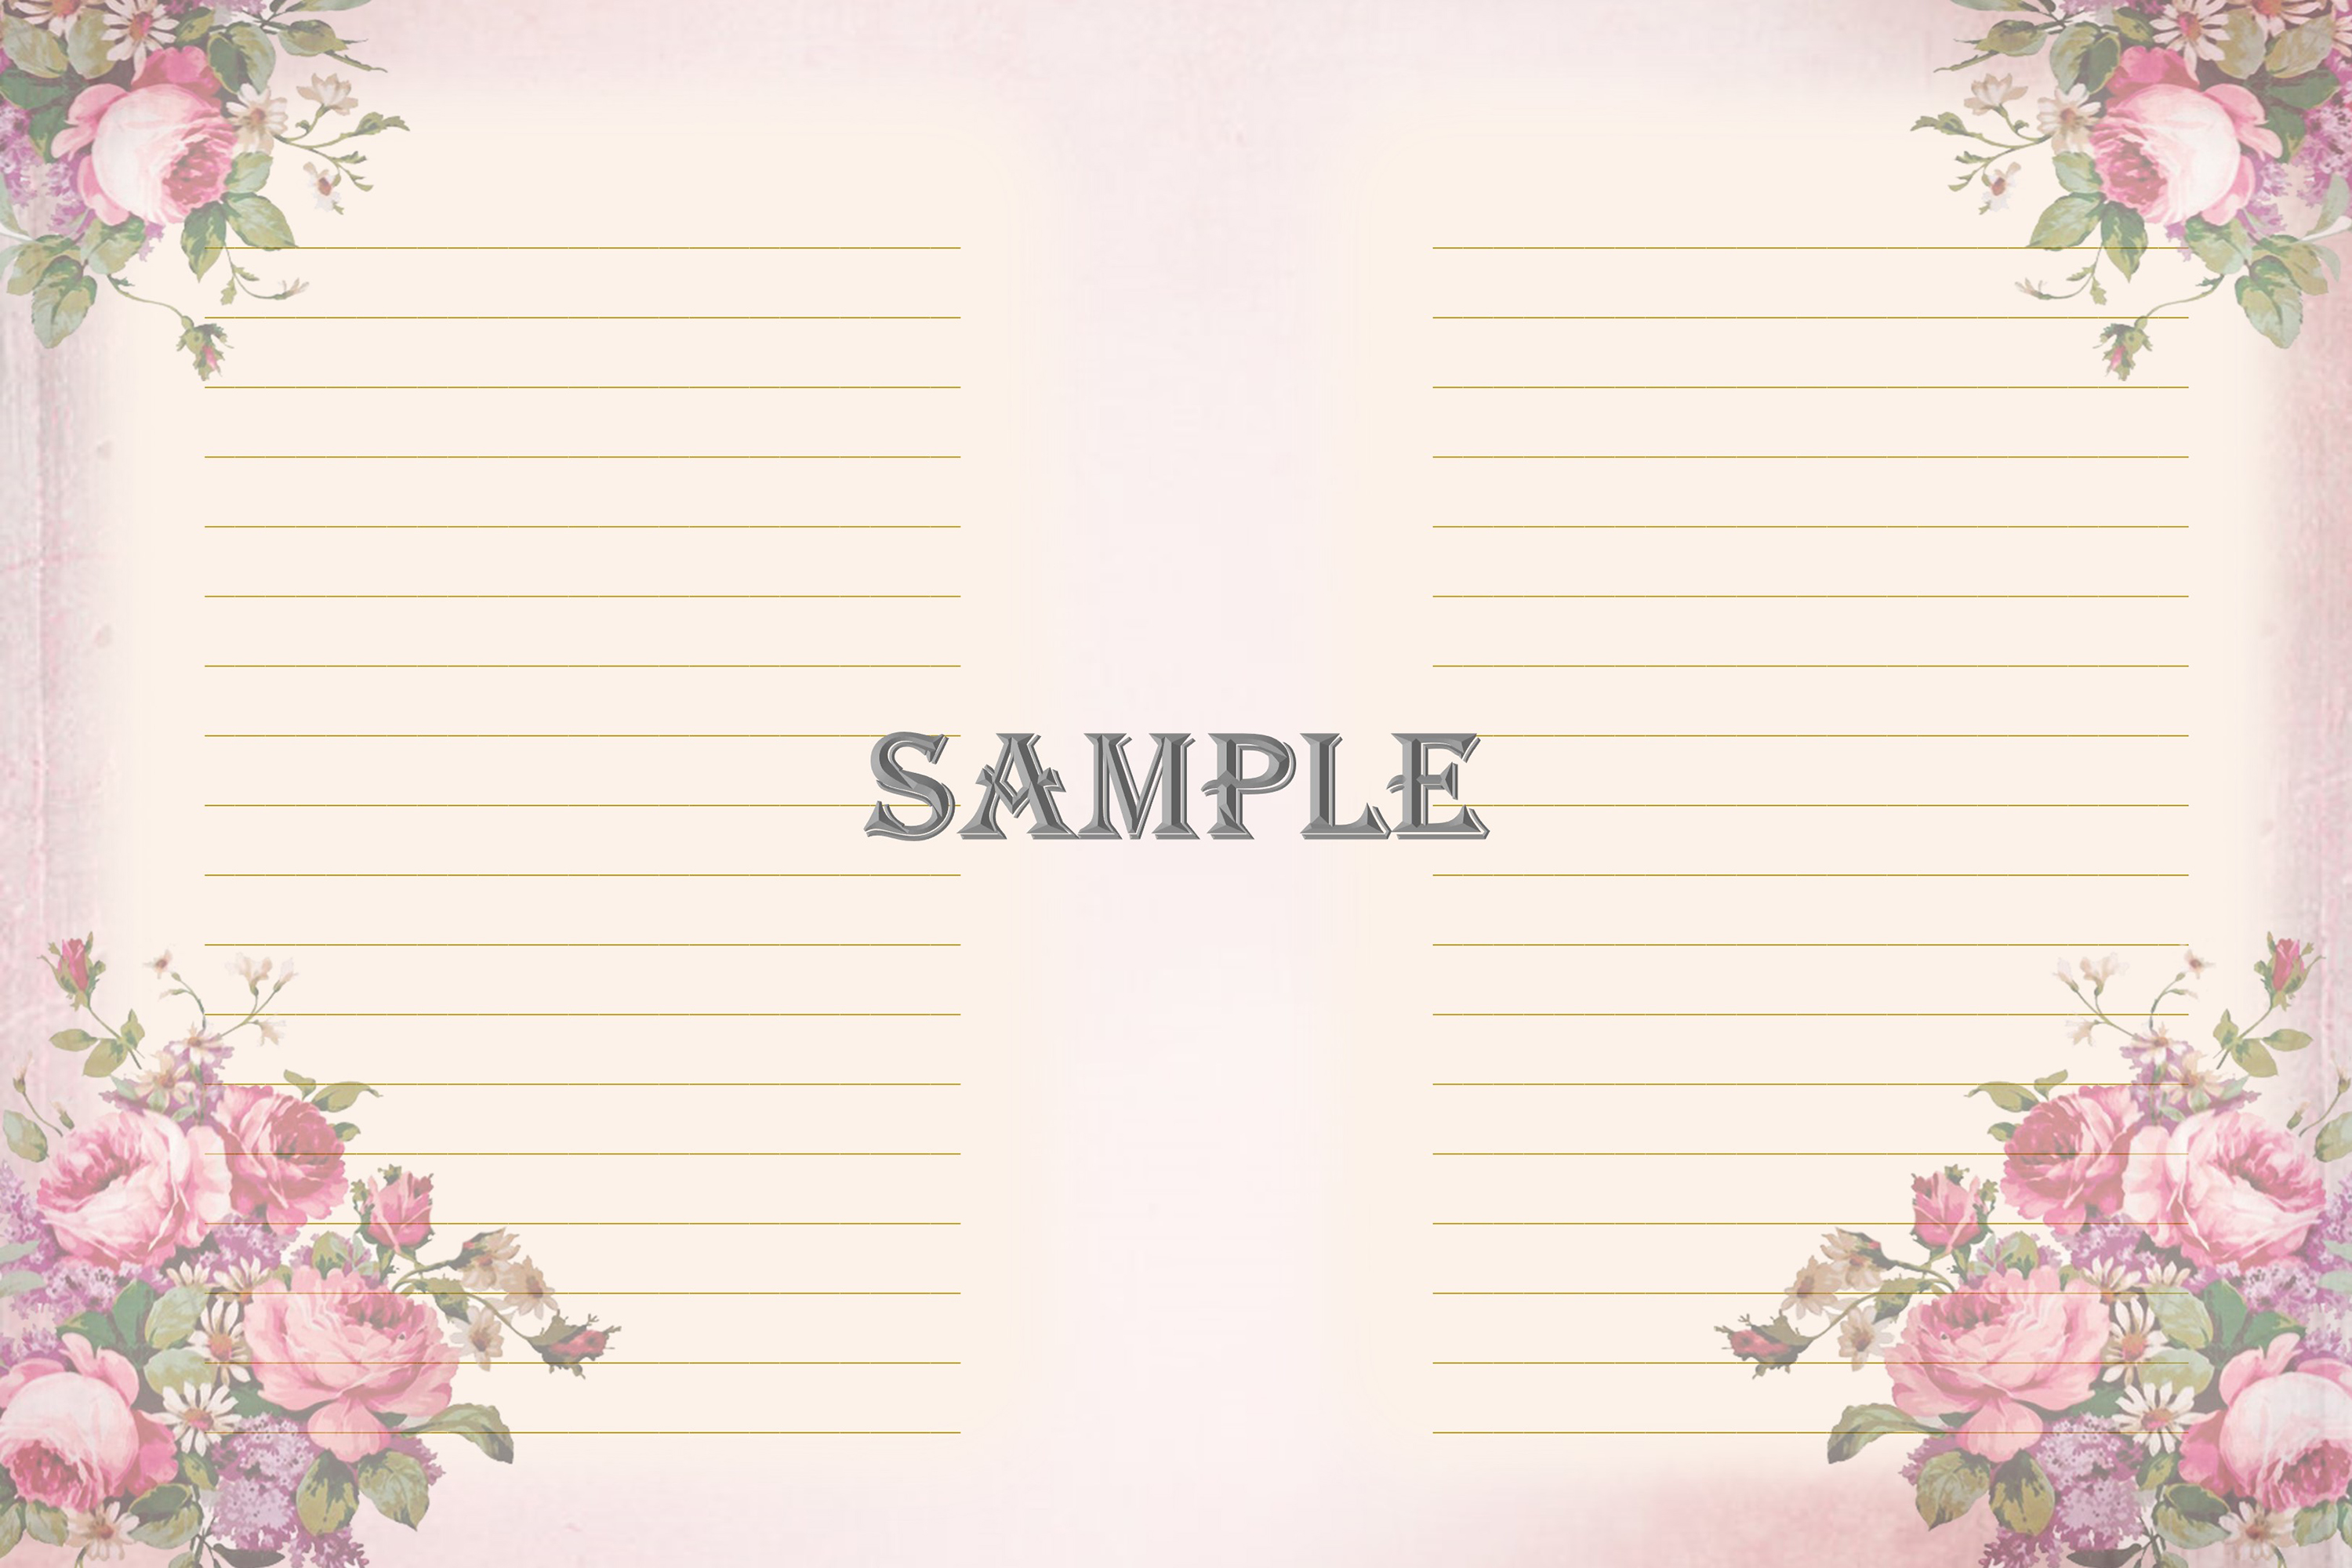 Vintage Ladies Backgrounds, Collage or Journal Sheets, A4 example image 8